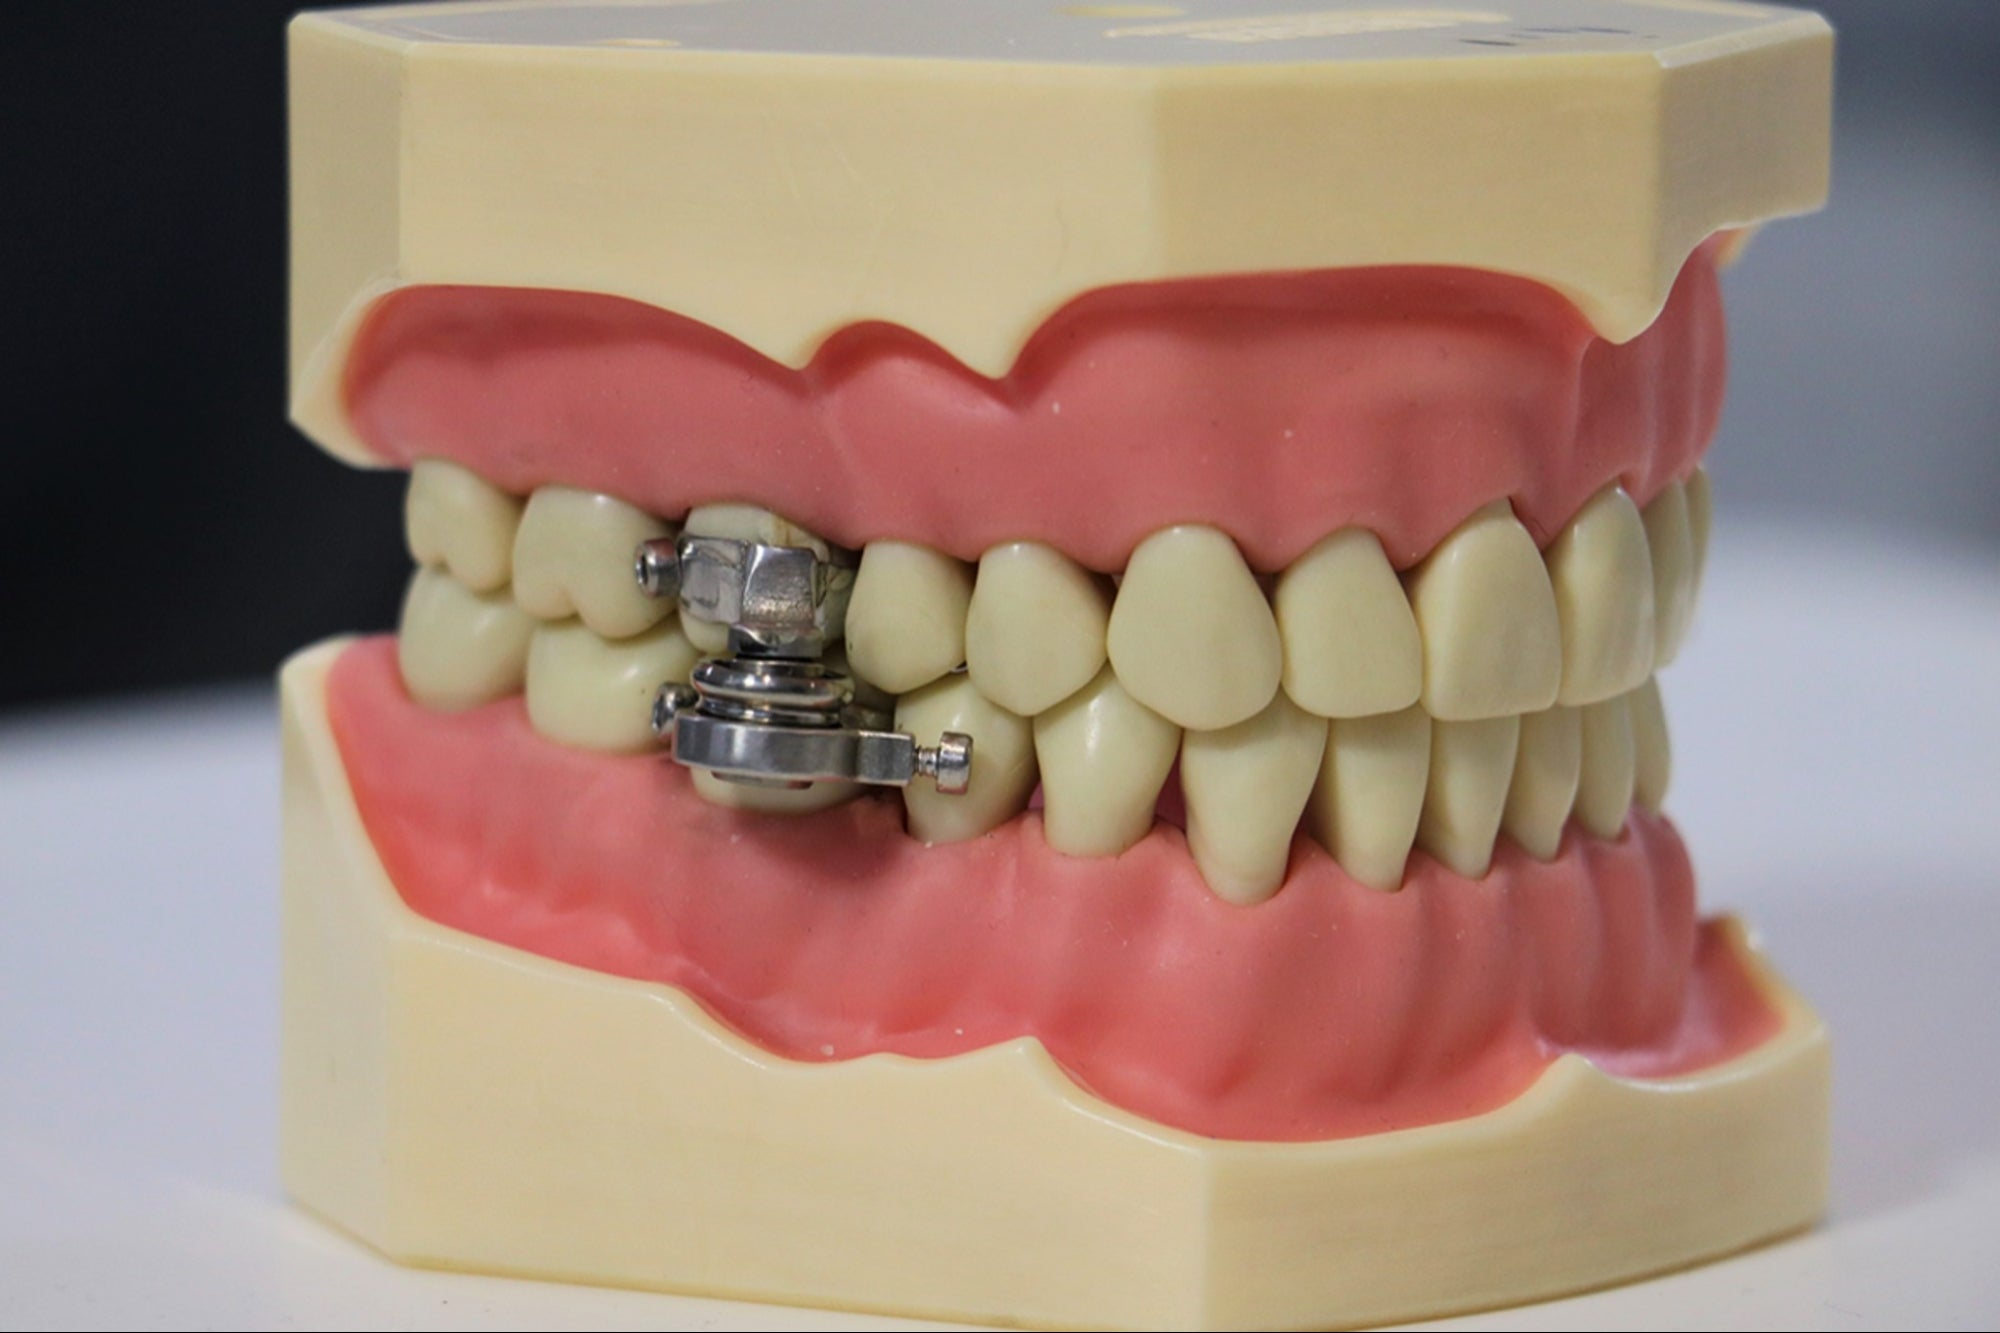 Do you want to lose weight? They present the first 'lock' for teeth thumbnail